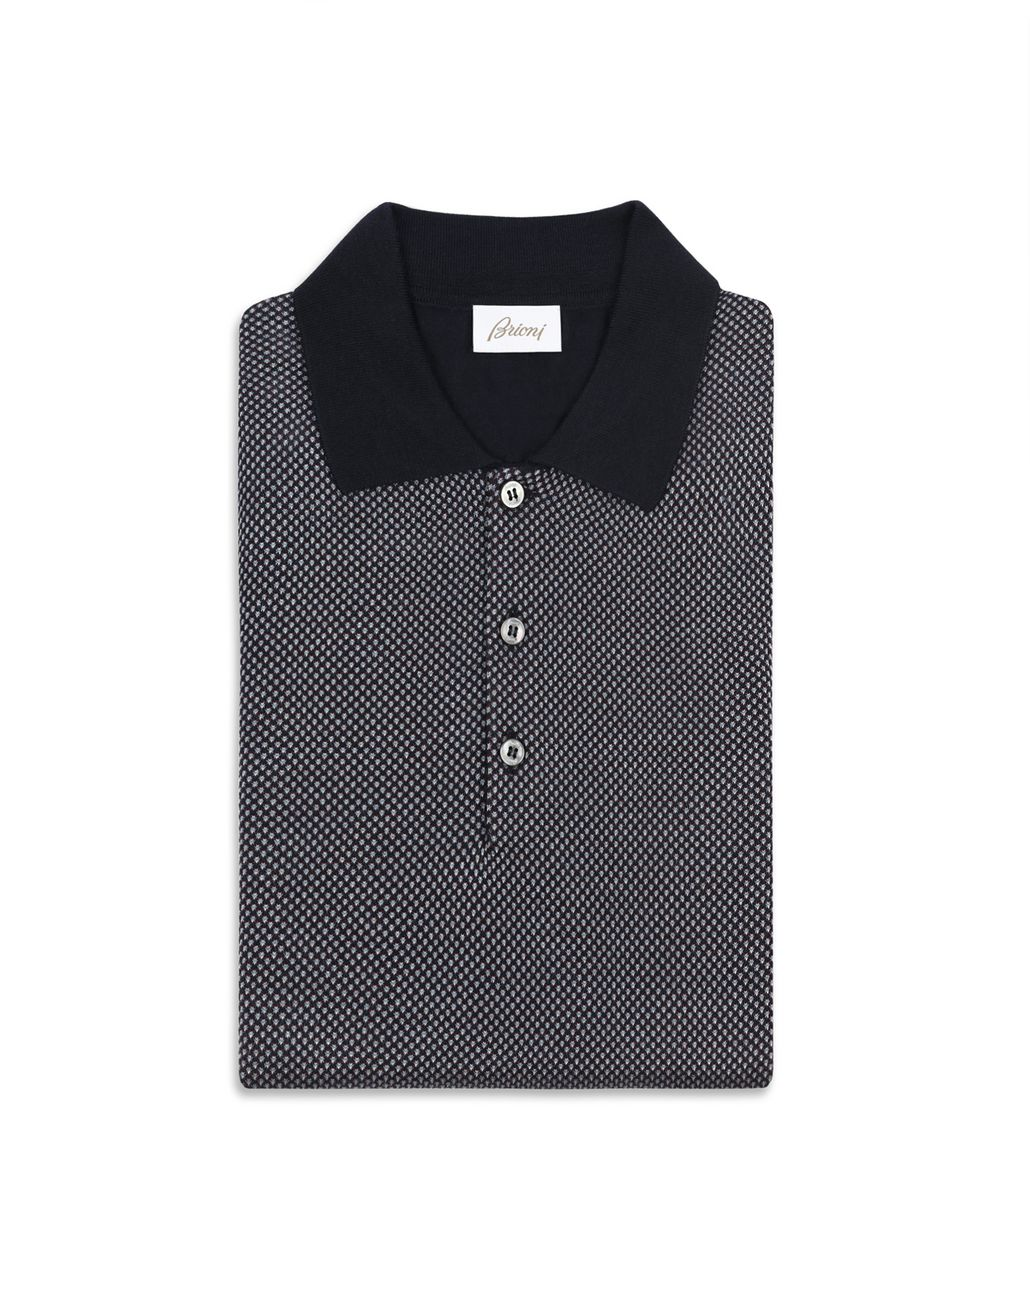 BRIONI Navy Blue and Bordeaux Long Sleeve Polo Shirt Knitwear [*** pickupInStoreShippingNotGuaranteed_info ***] e